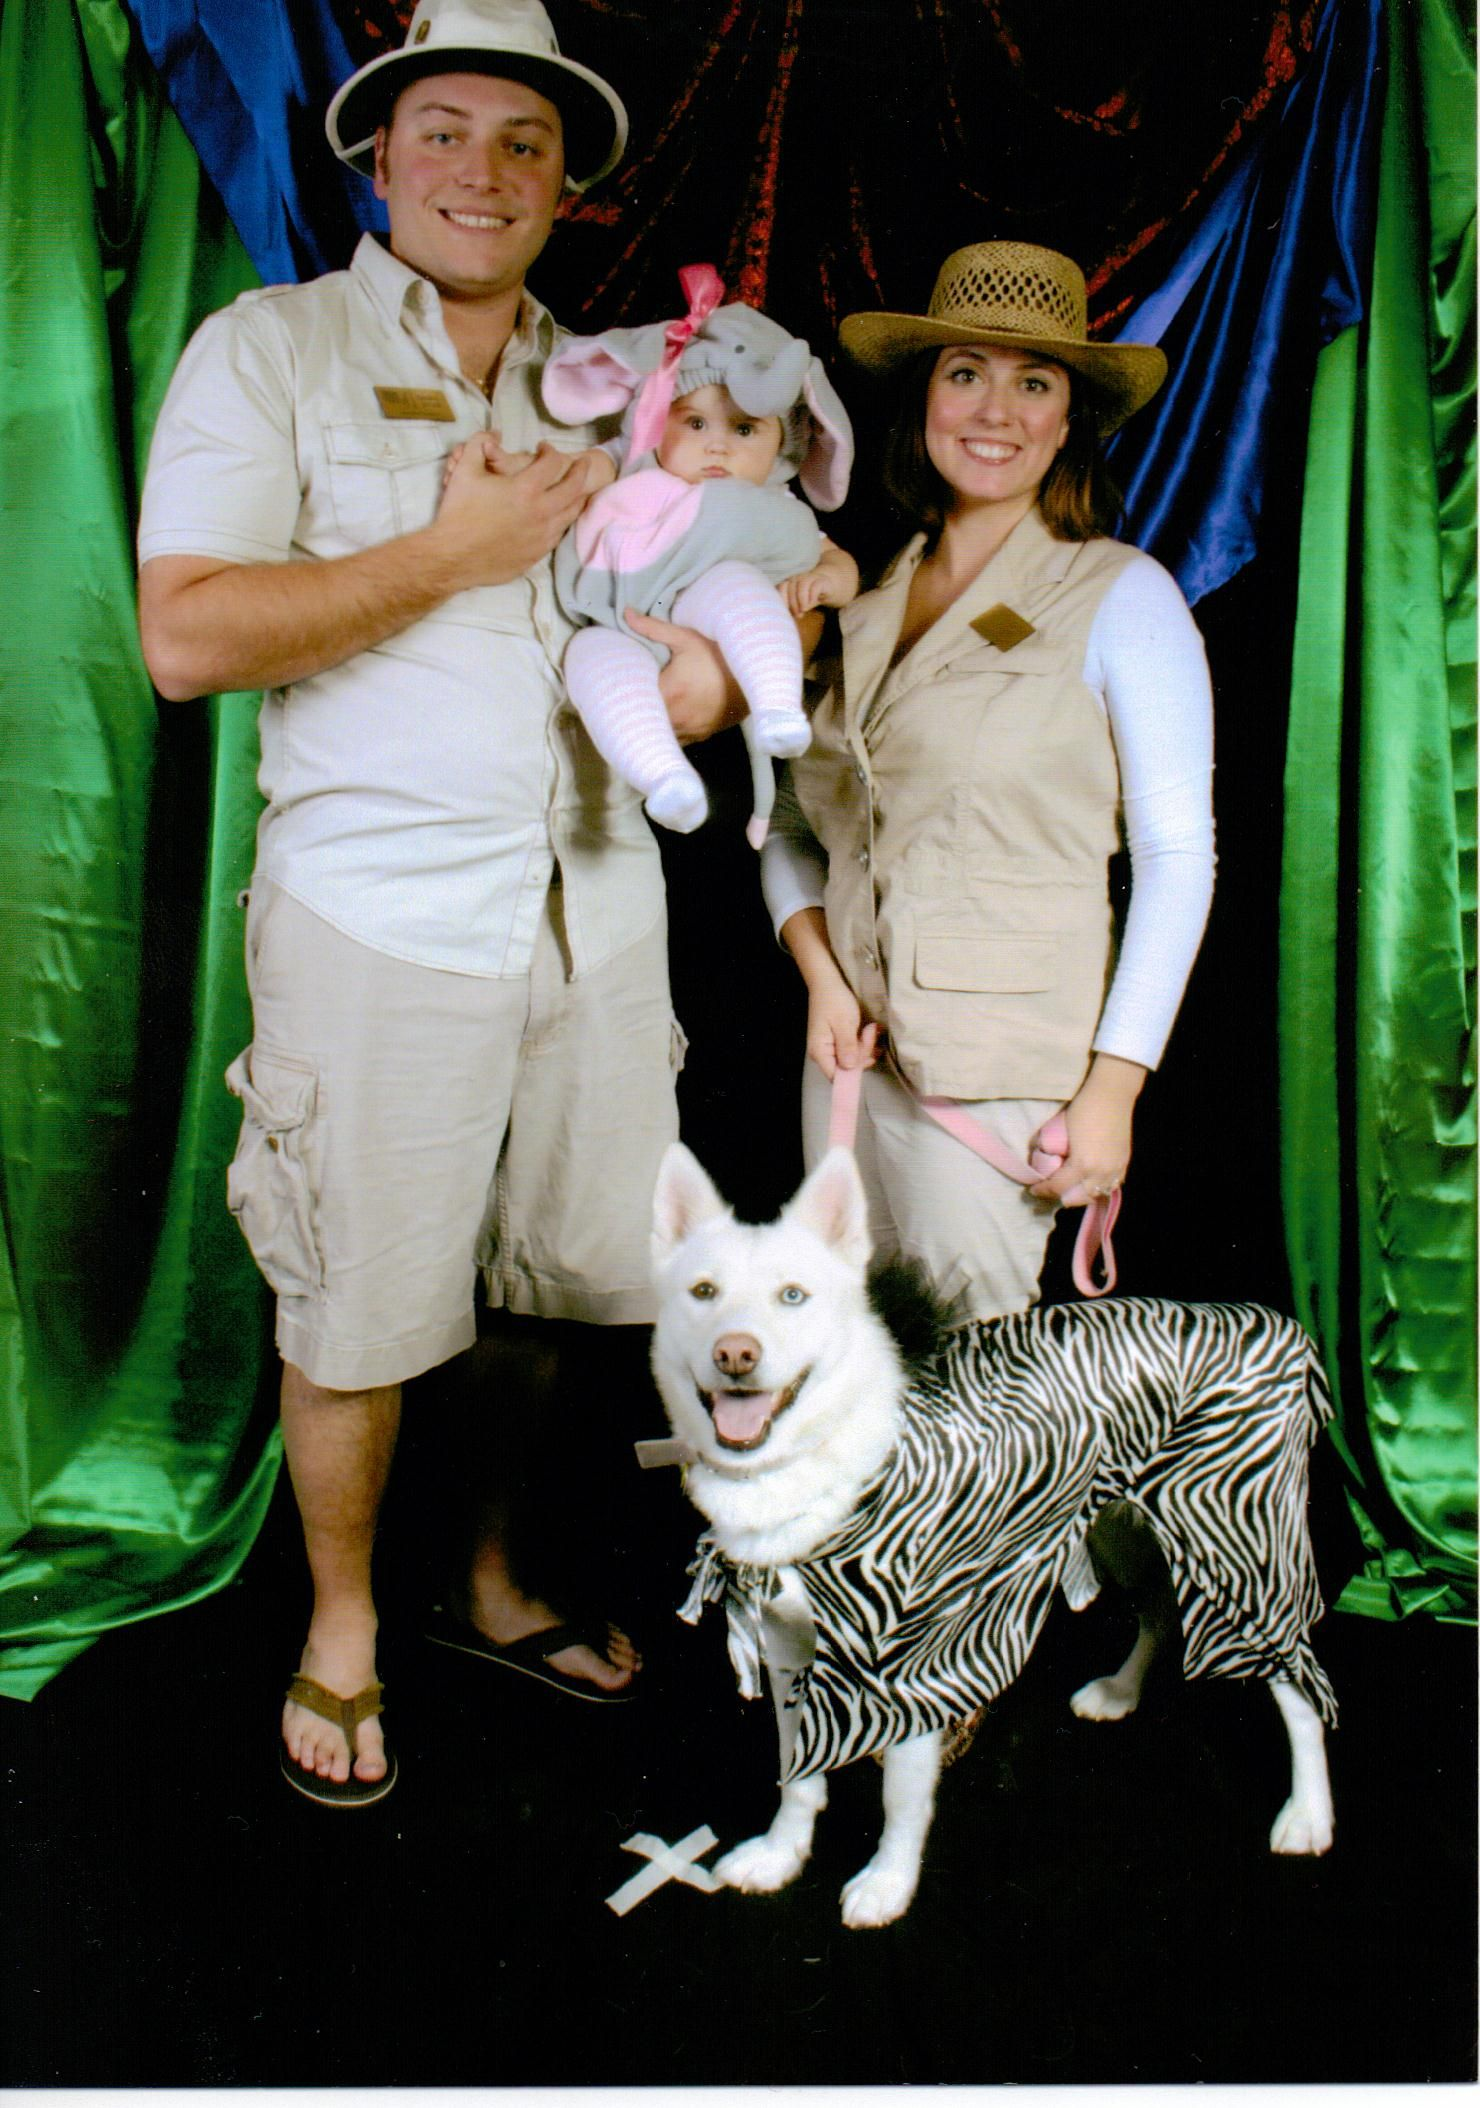 Family Halloween Costume With Dog Zoo Keepers Or Safari Themed